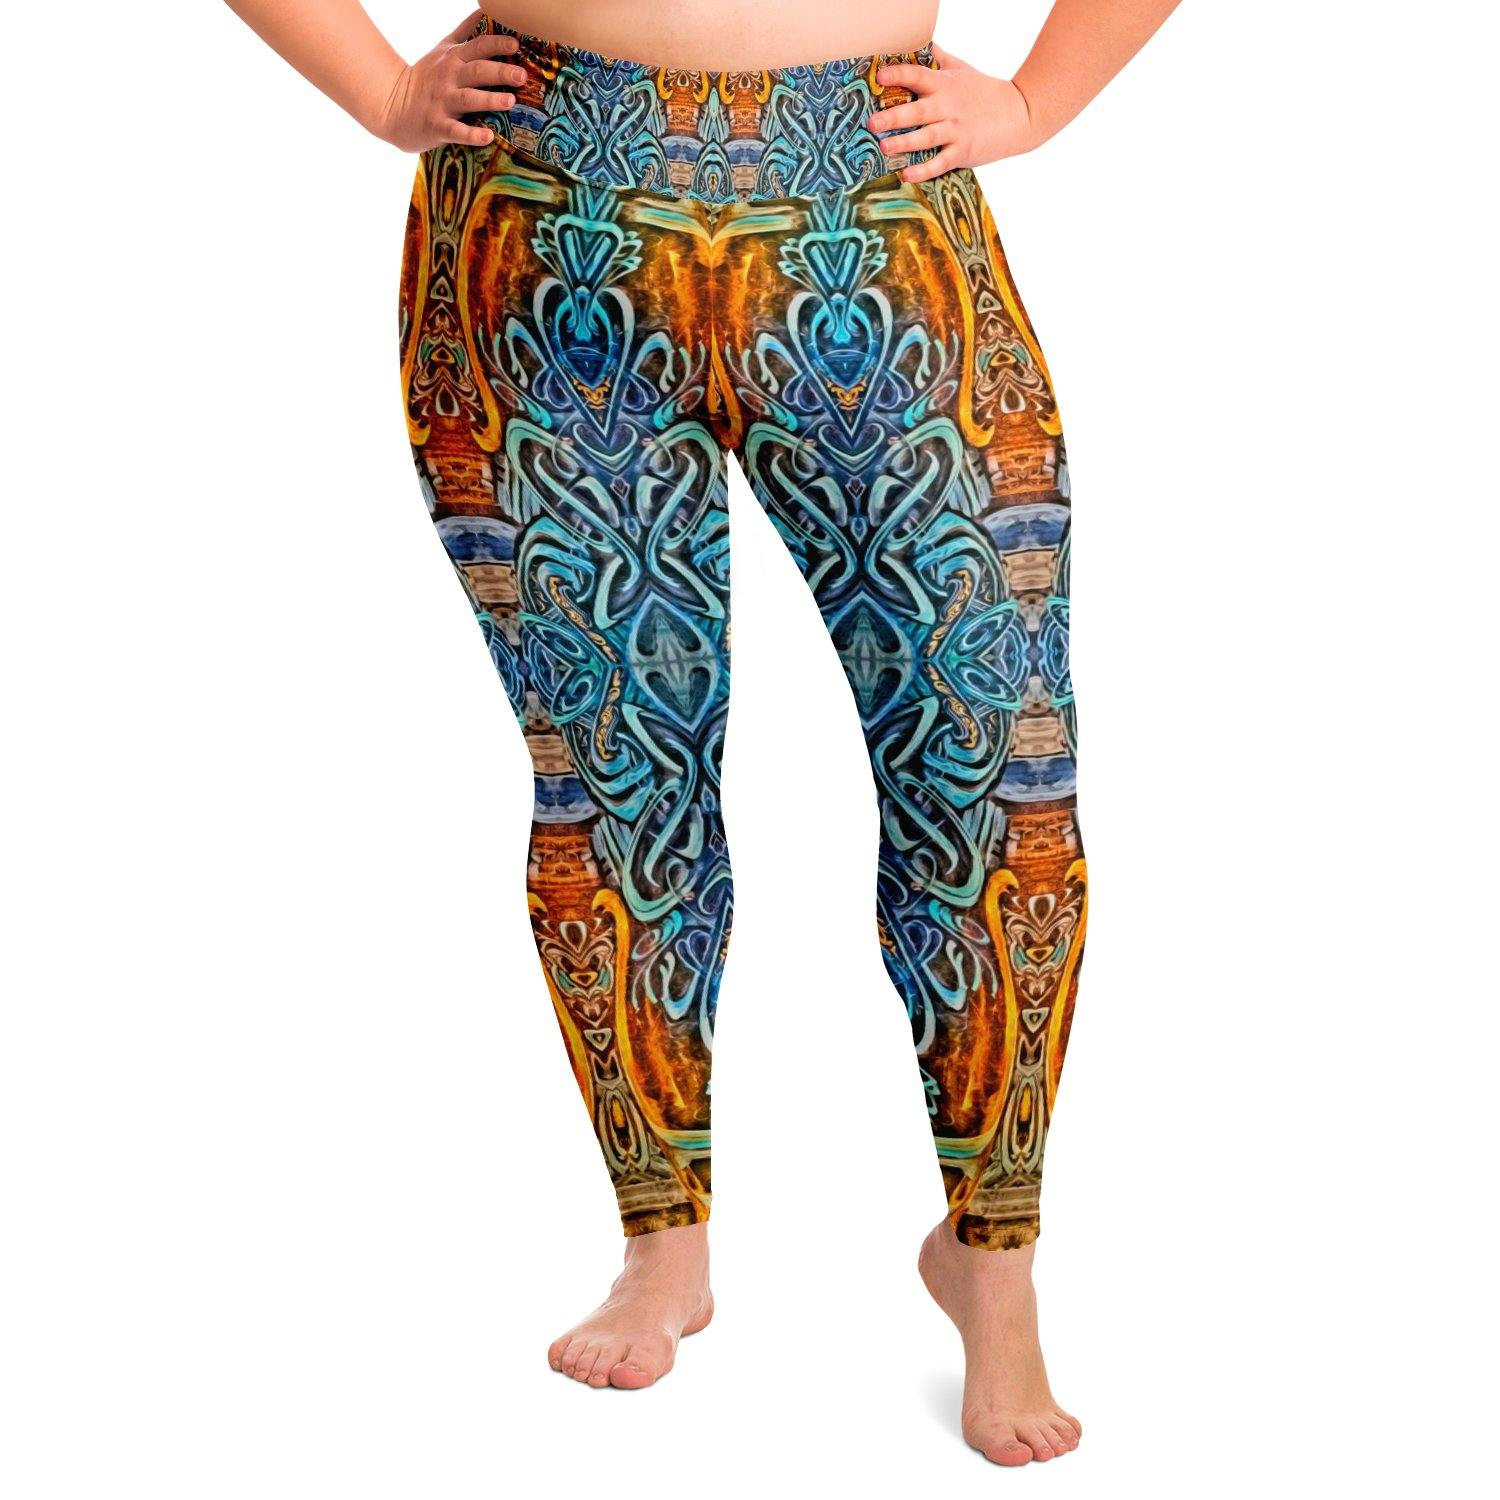 Nightspell Premium Plus Size Yoga Leggings - Manifestie